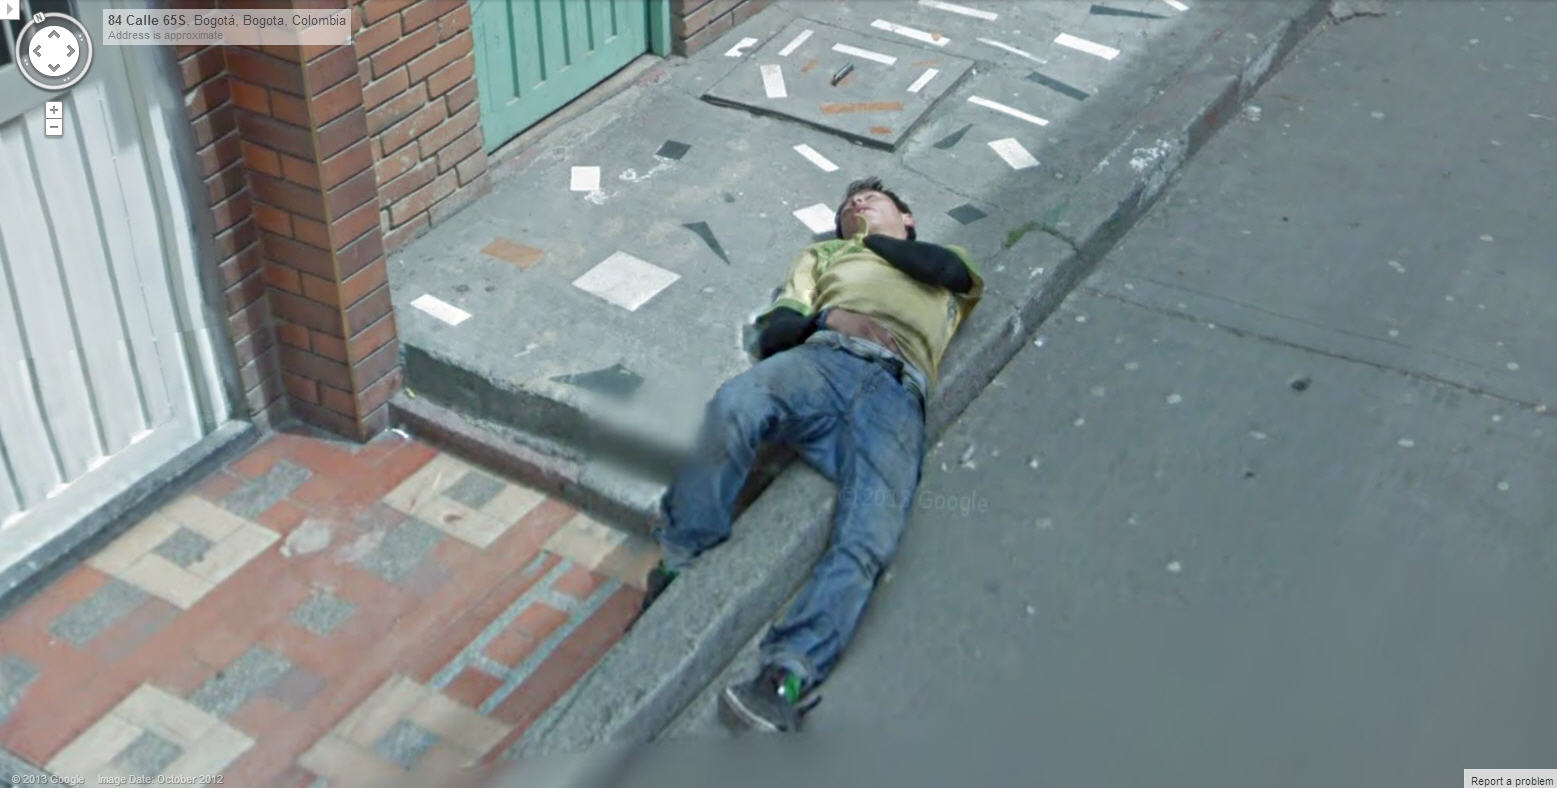 Is this Colombian Man Dead or Sleeping? | Google Street View World Dead On Google Maps Address on